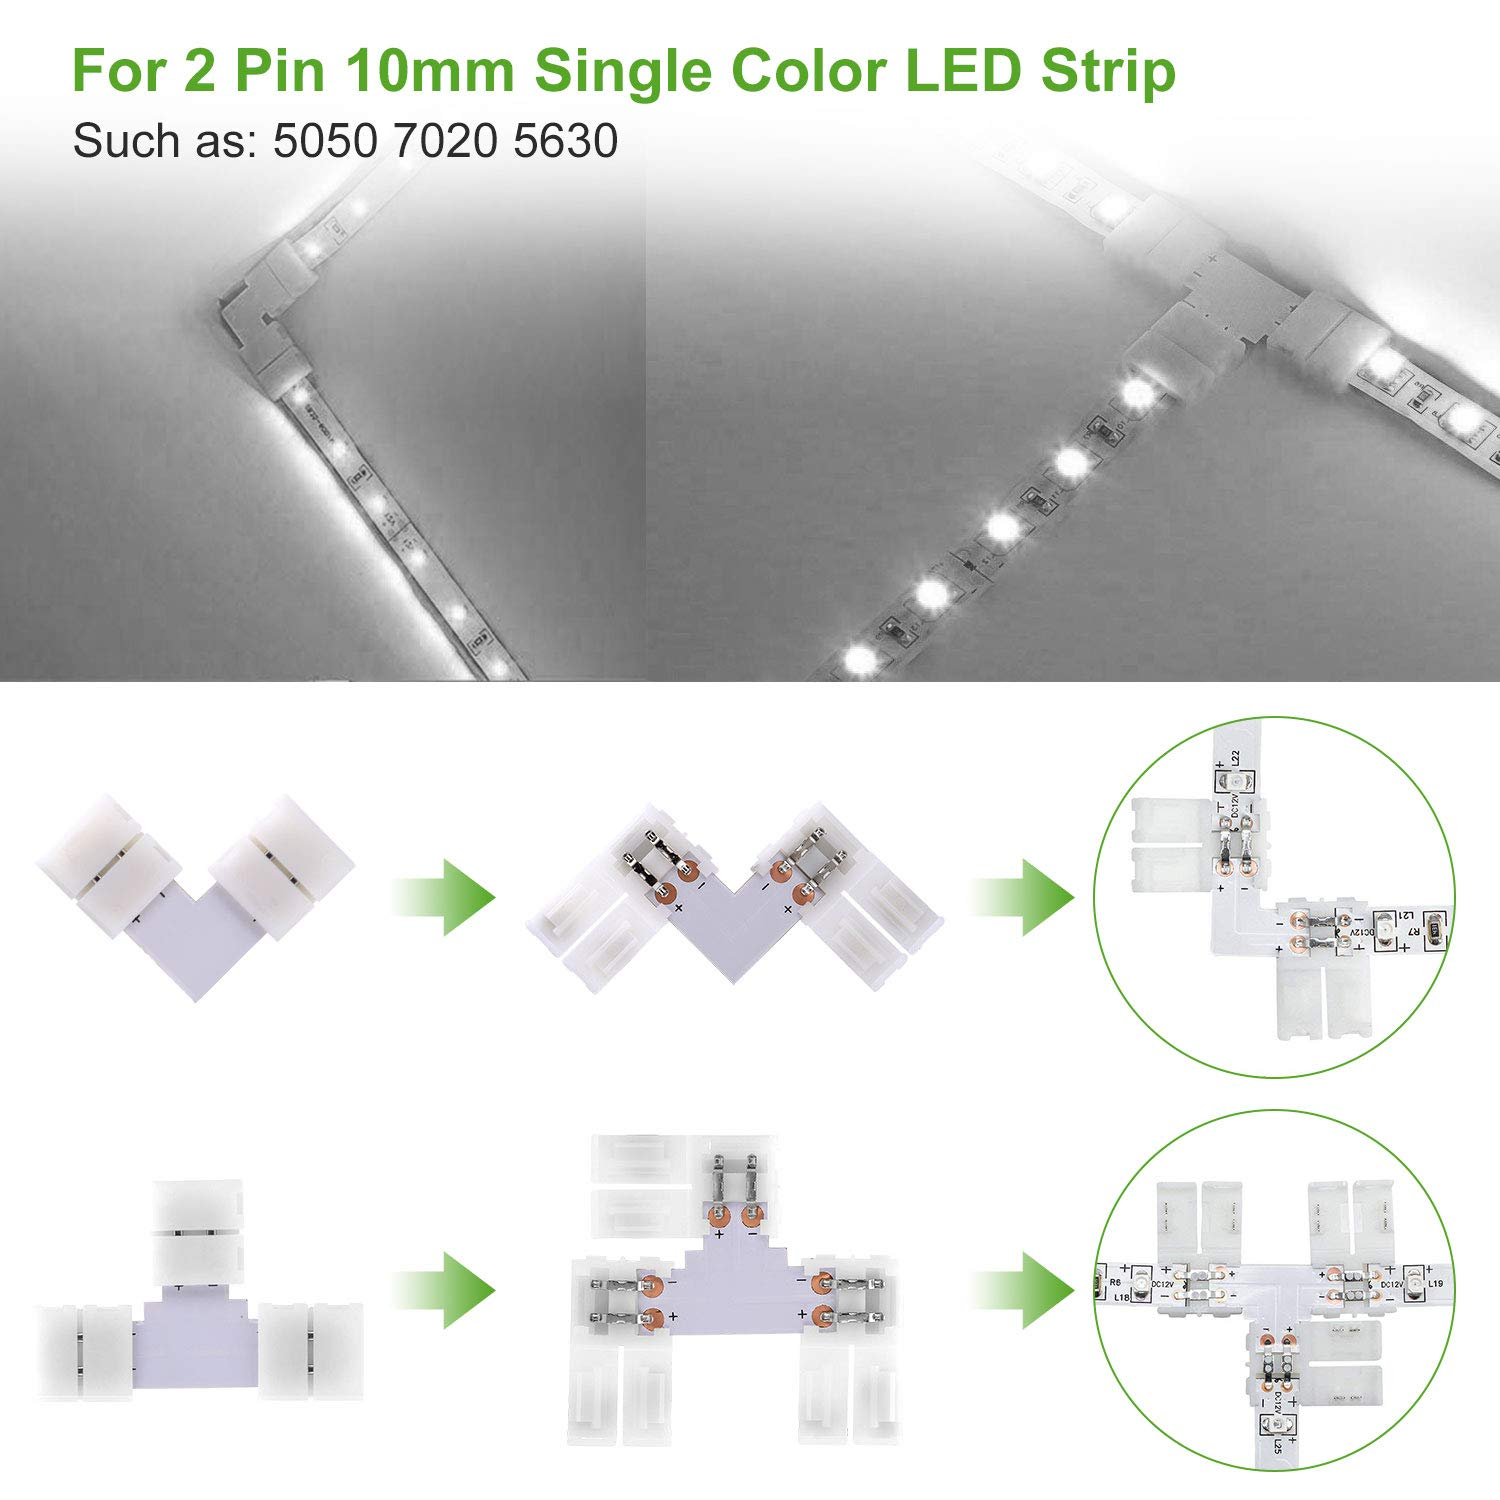 Traki 2 Pin 10mm 5050 Led Strip Connectors Kit Includes 10pcs Wireclip For Wiring Light Strips Photo 3 Jumper 8pcs Right Angle Corner Solderless L Shape And 2pcs T